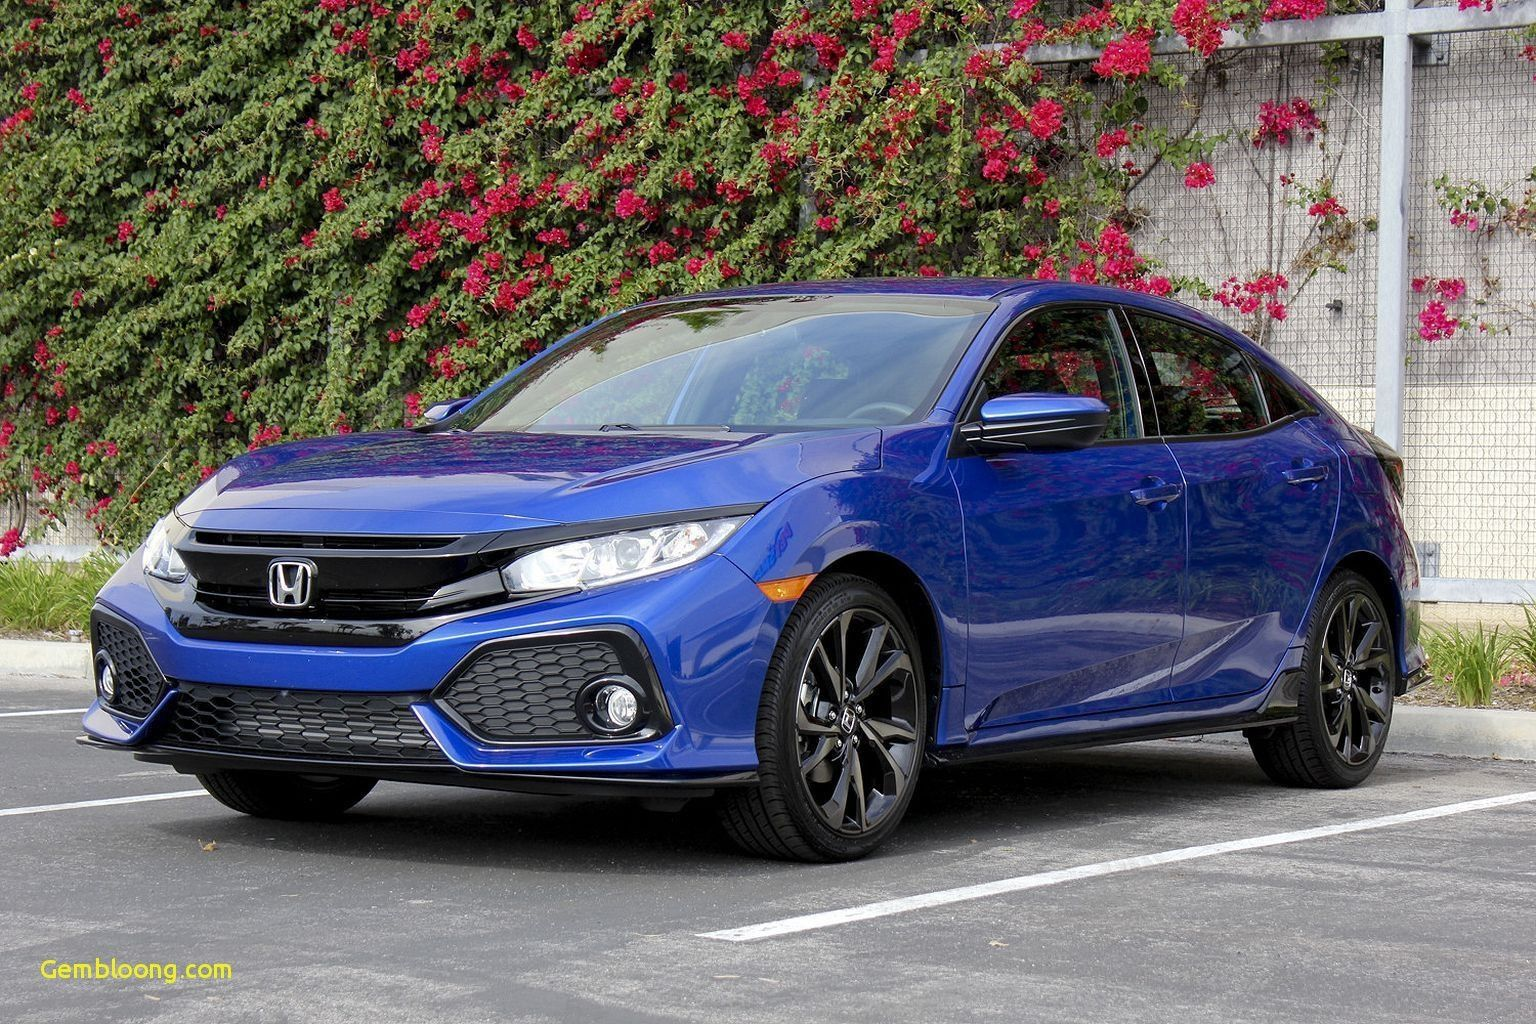 New 2020 Honda Civic Si Type R New Engine Cars Review 2019 Cars